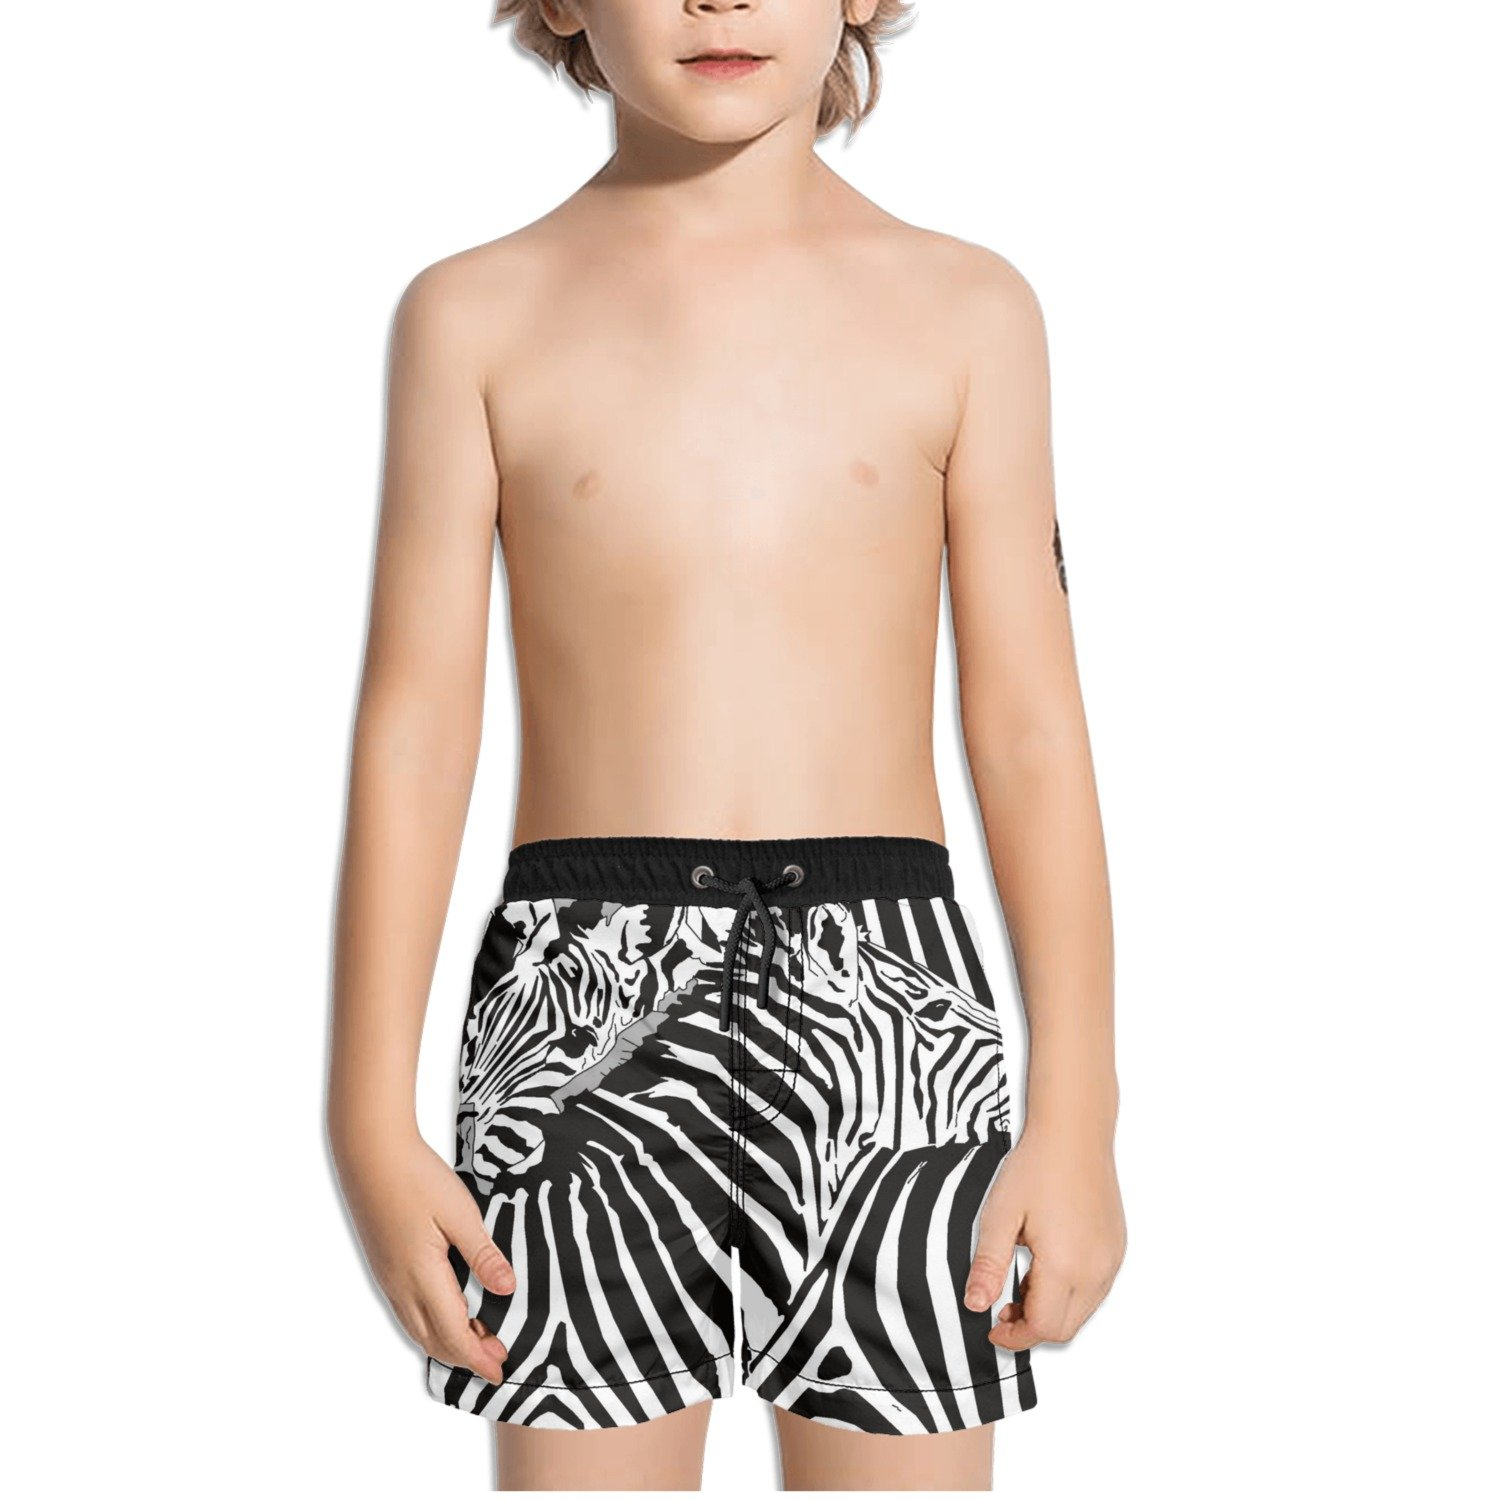 Ouxioaz Boys Swim Trunk Zebra Pattern Hug Beach Board Shorts